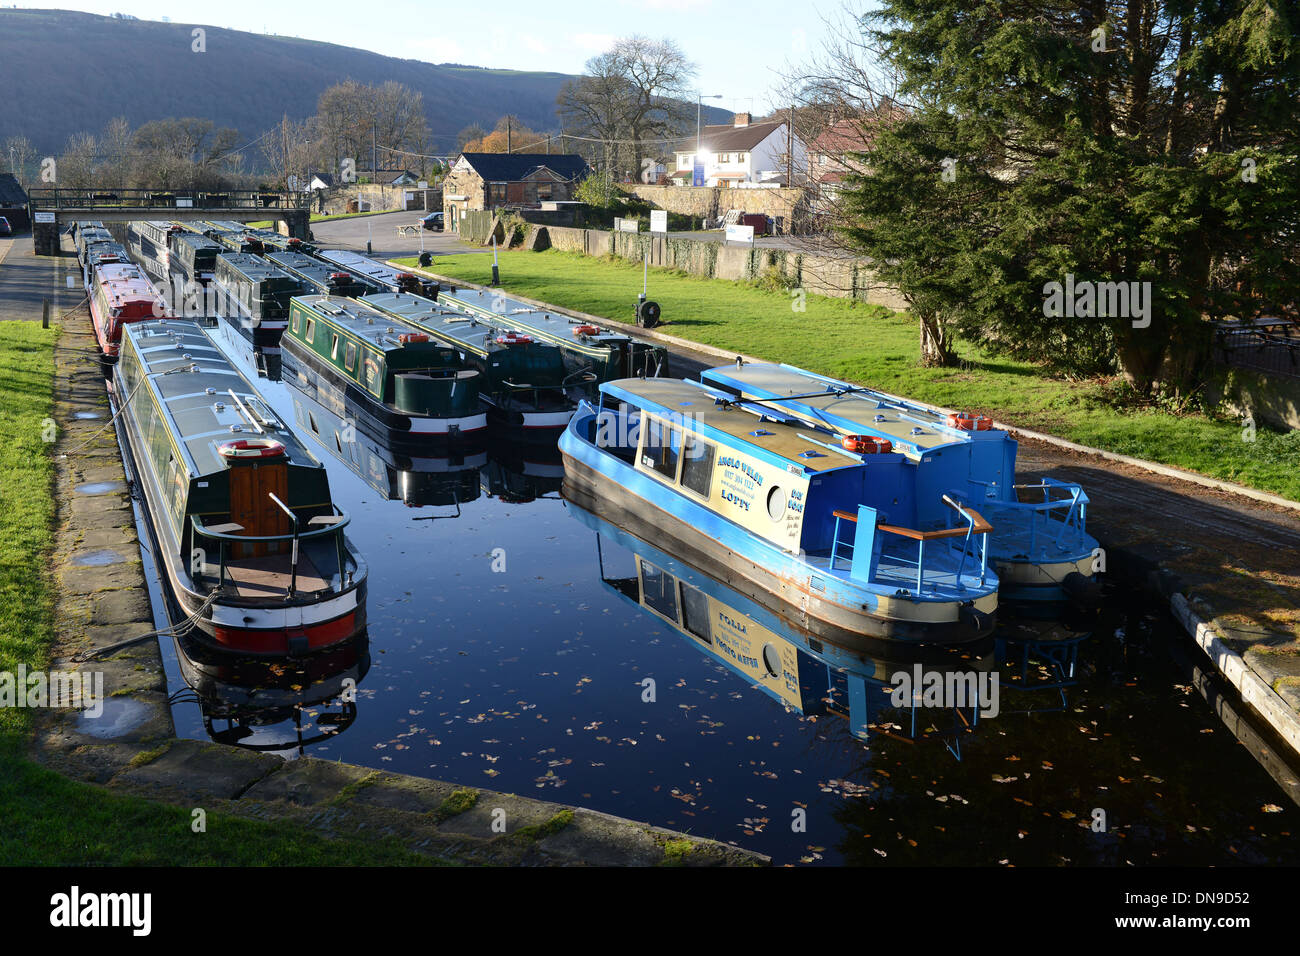 Narrowboats moored for winter at Trevor Canal Basin on the Llangollen Canal in Wales Uk - Stock Image